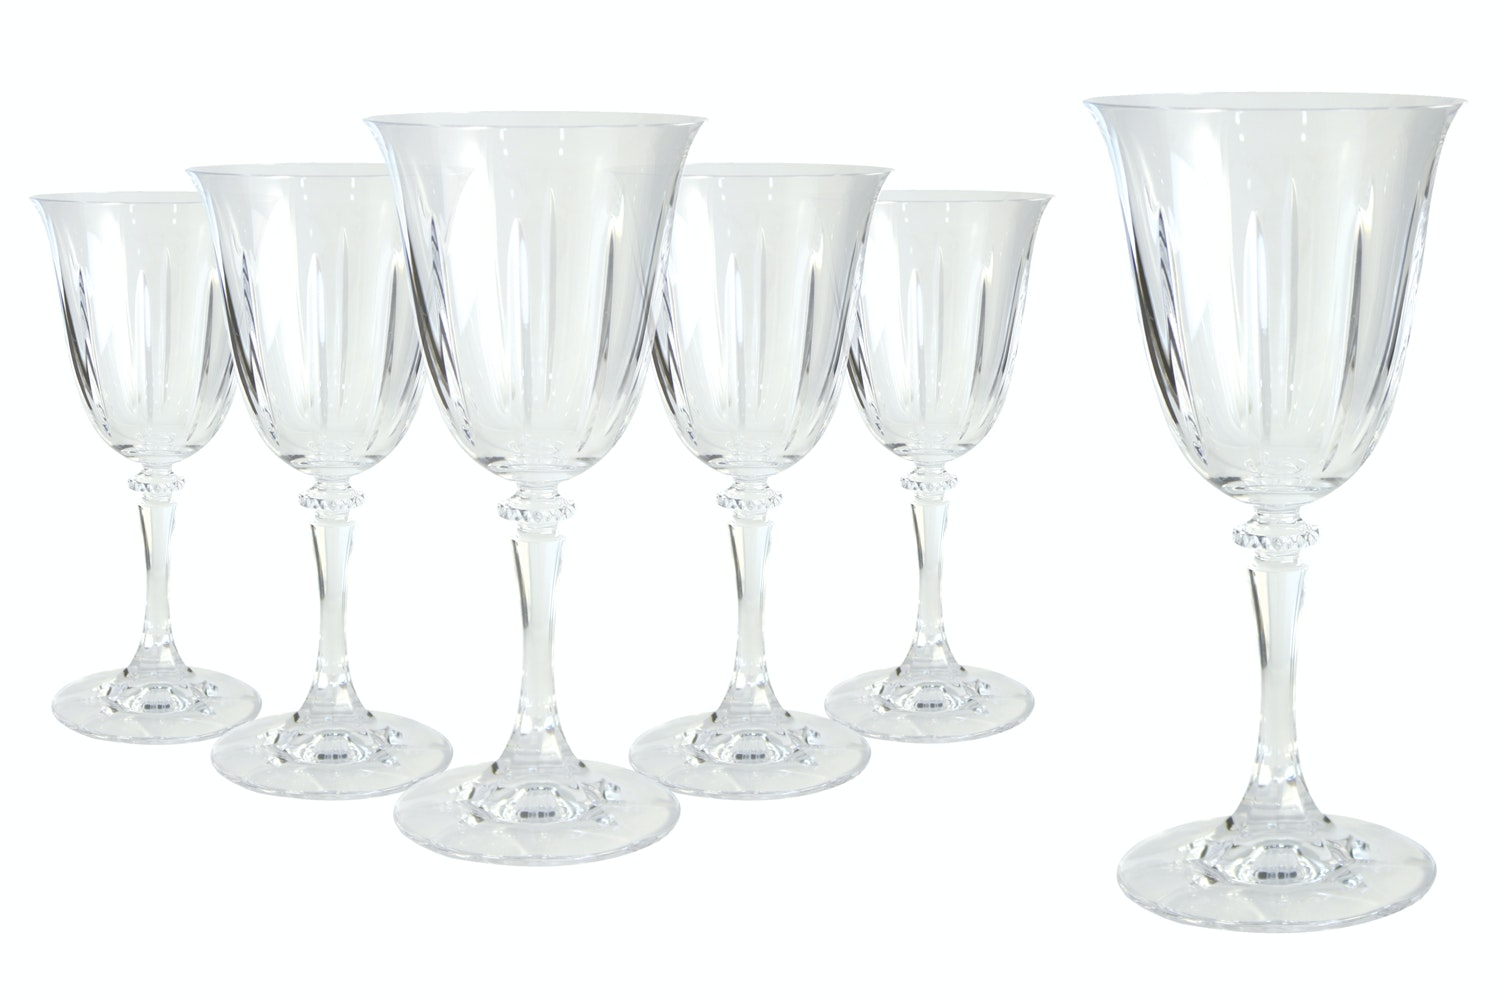 Tranquility Wine Glass Hat Box|Set of 6